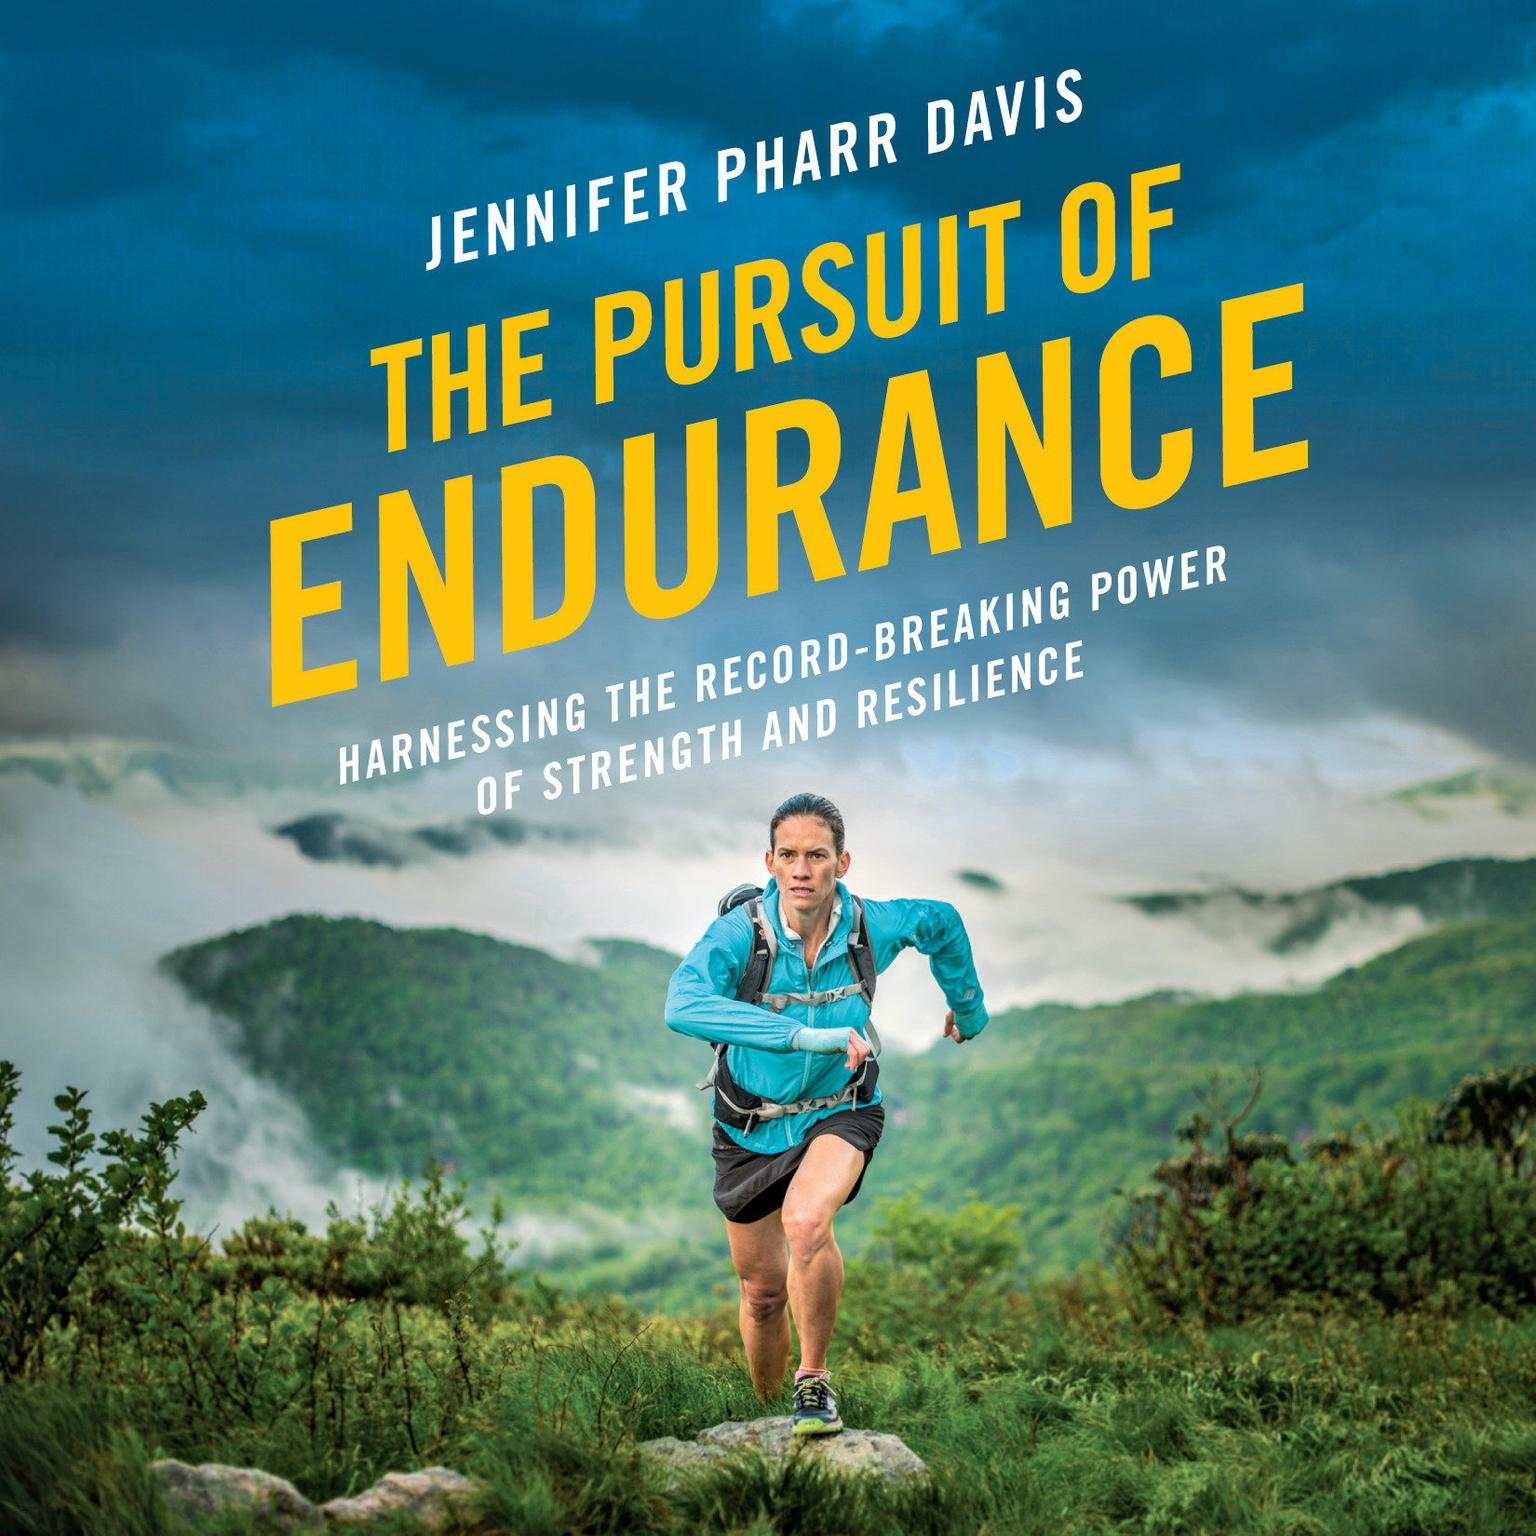 Printable The Pursuit of Endurance: Harnessing the Record-Breaking Power of Strength and Resilience Audiobook Cover Art